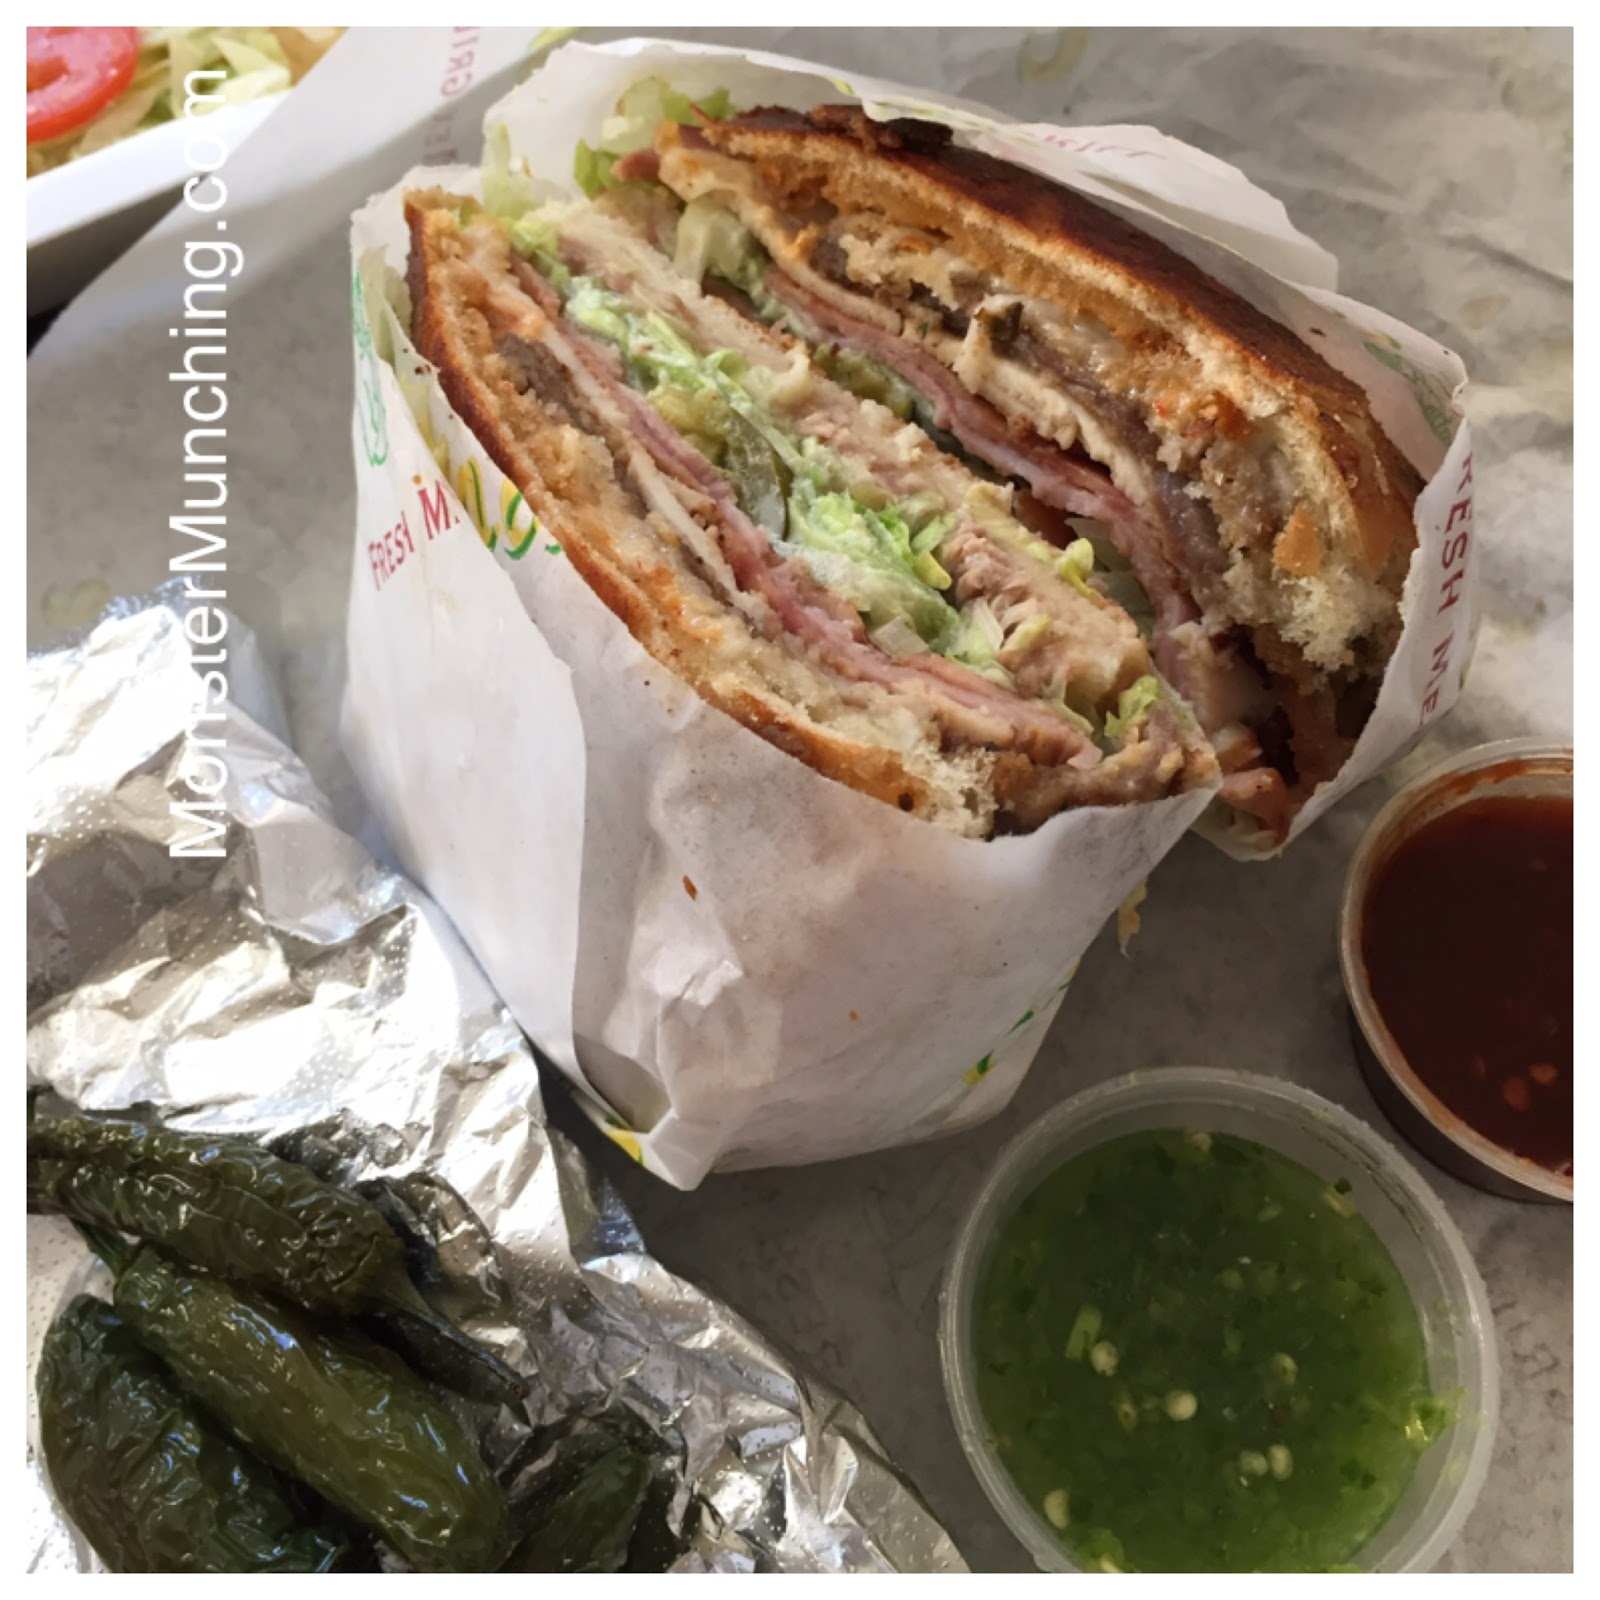 Monster Munching: Torta Cubana at Cancun Juice - Santa Ana